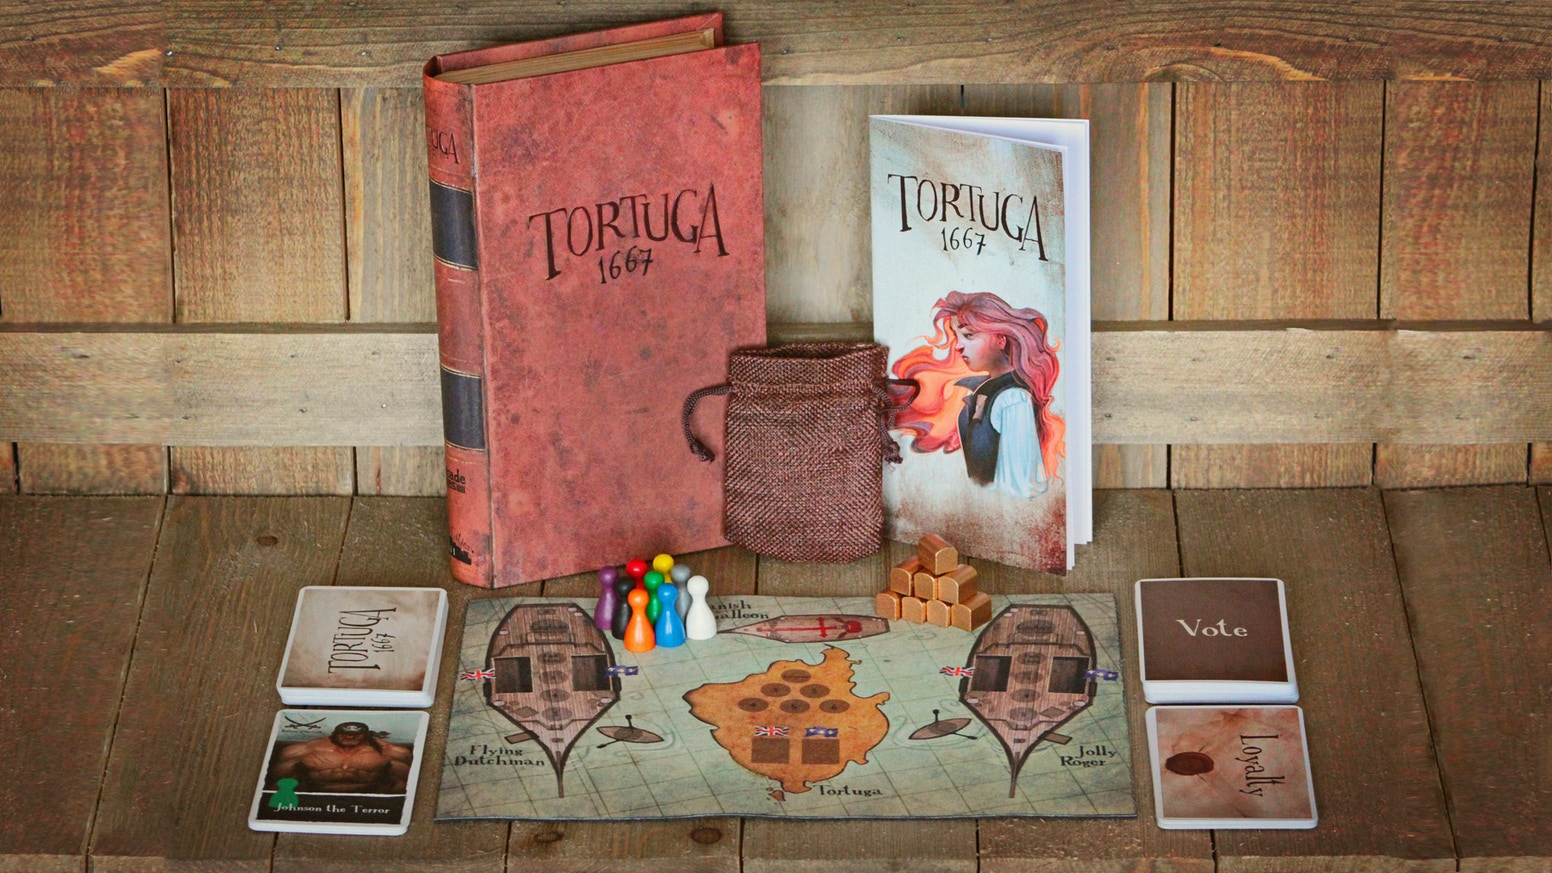 Steal treasure from the Spanish, but be wary of greedy crewmates who may be secretly plotting to maroon you to the island of Tortuga. Now available!